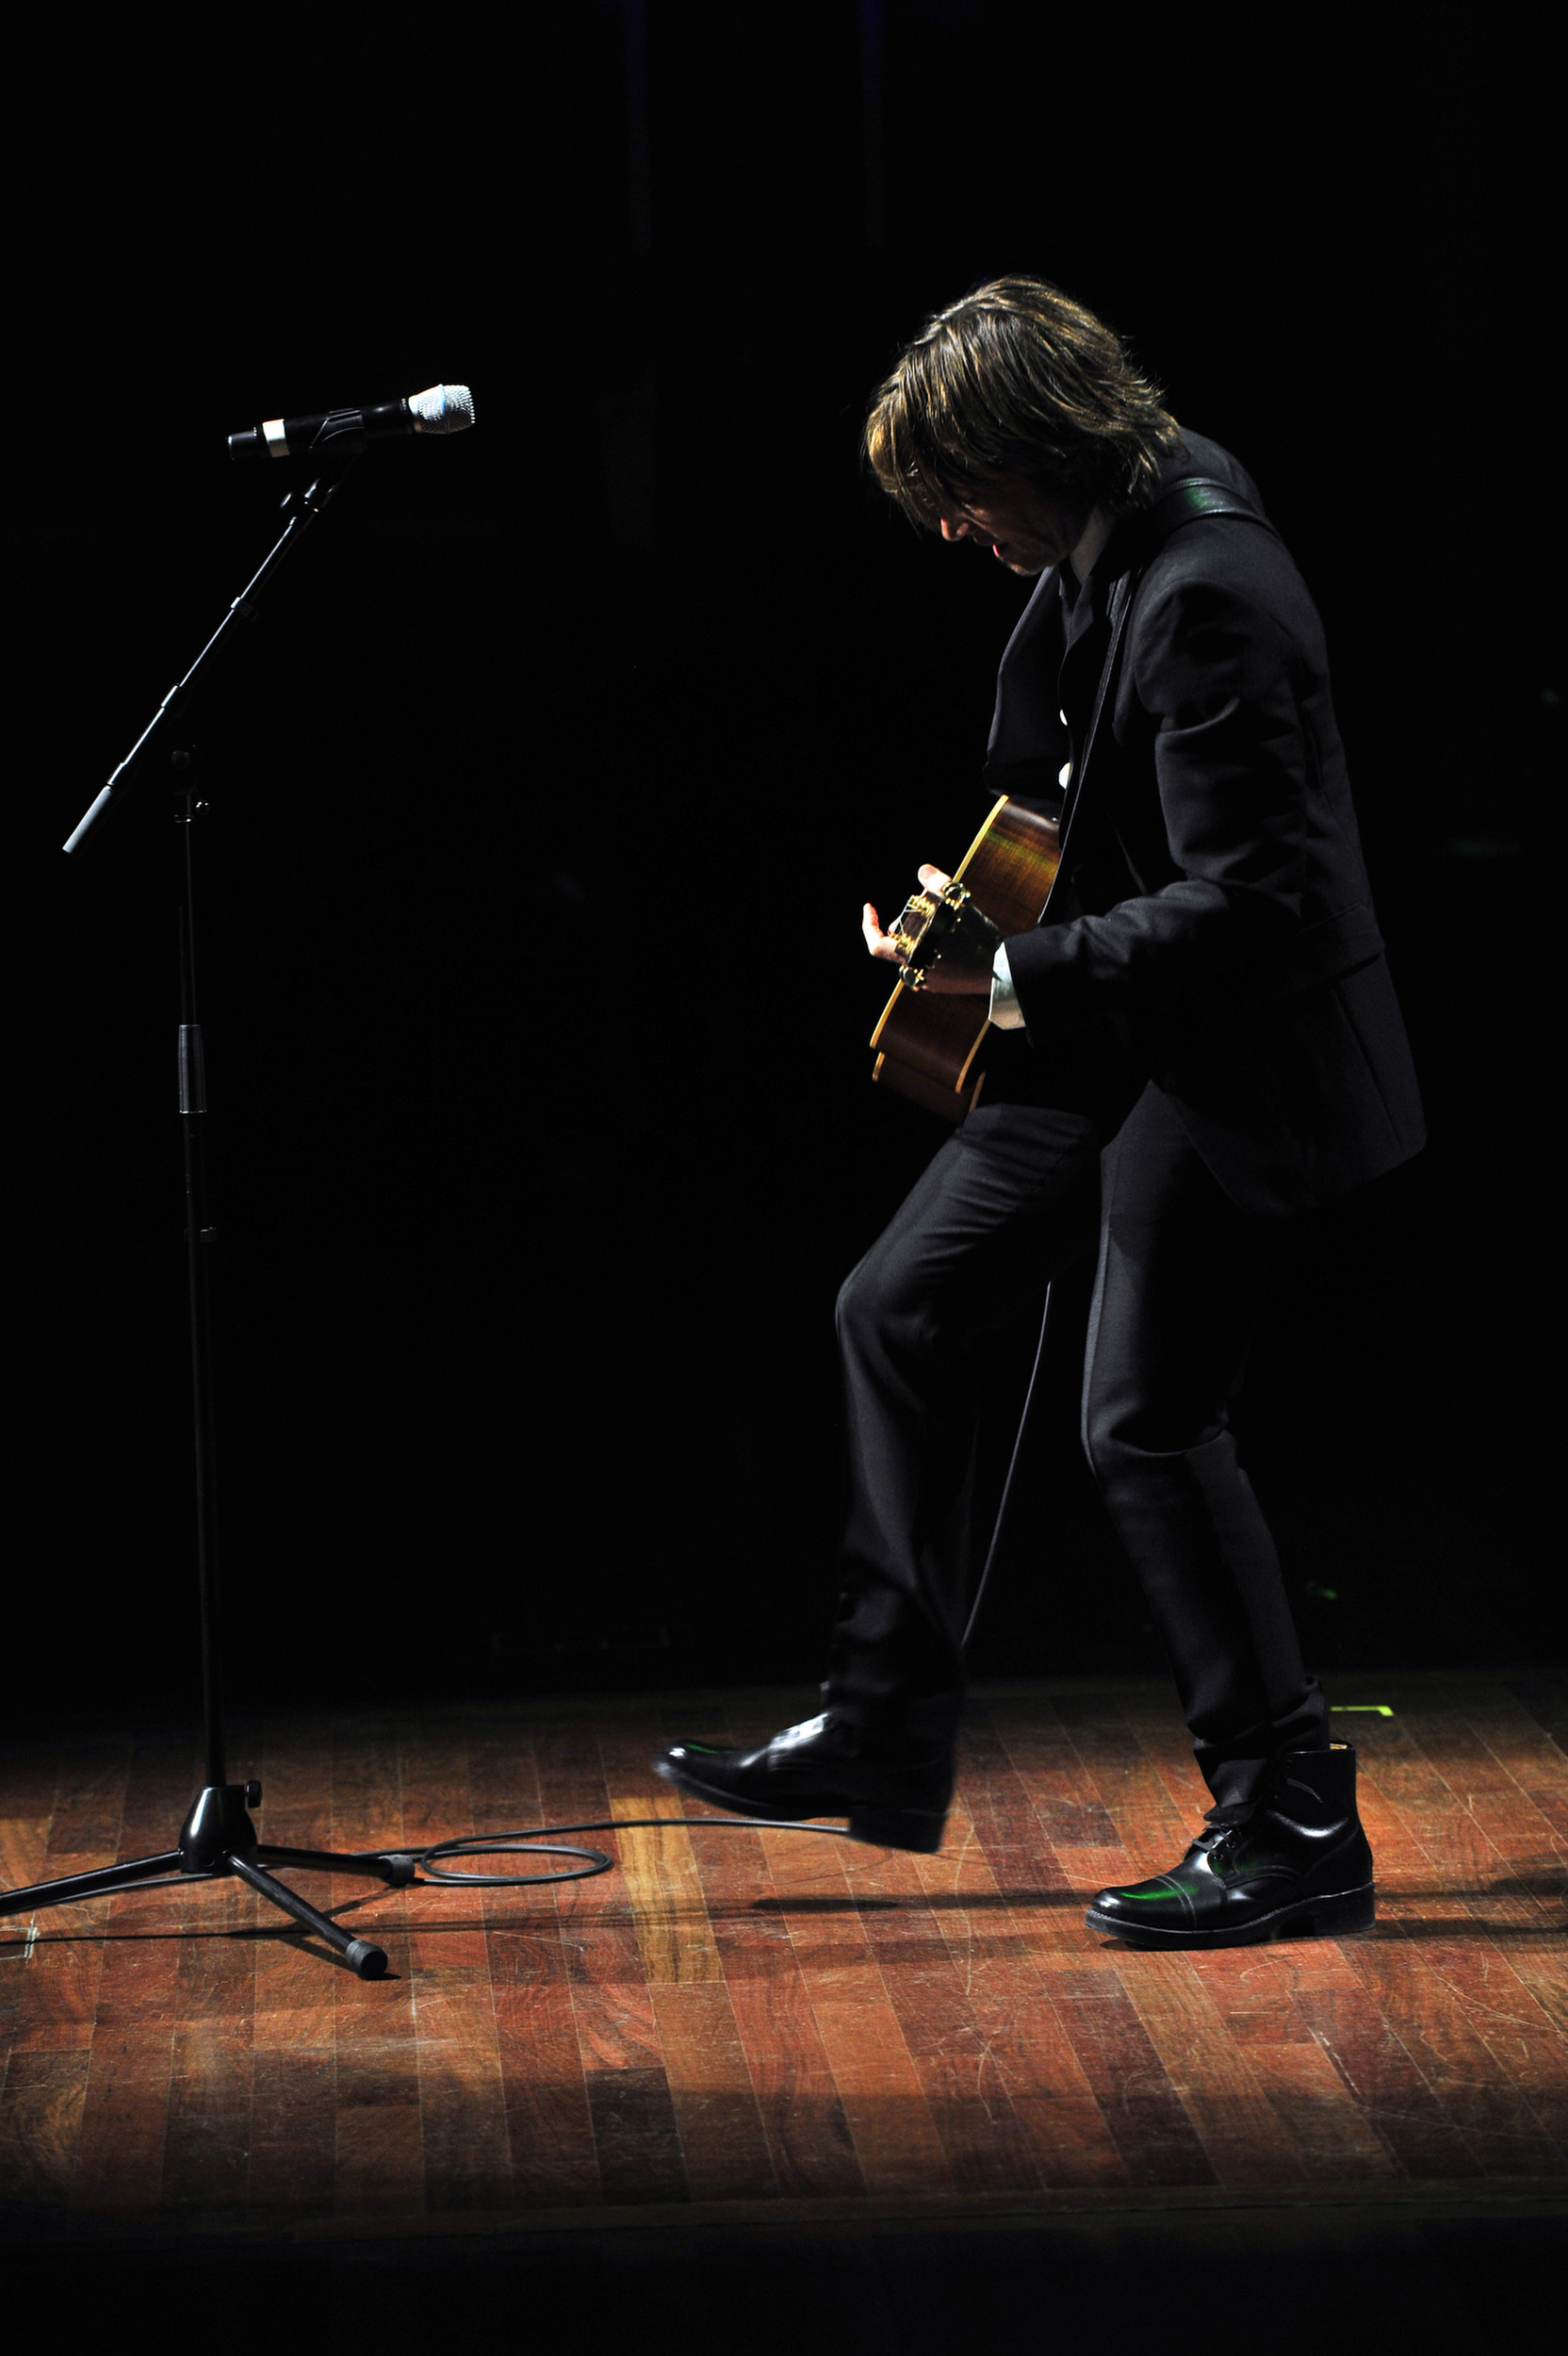 Keith Urban performs solo with an acoustic guitar at the Symphony Ball held at the Schermerhorn Symphony Center December 8, 2012 in Nashville, Tenn. .